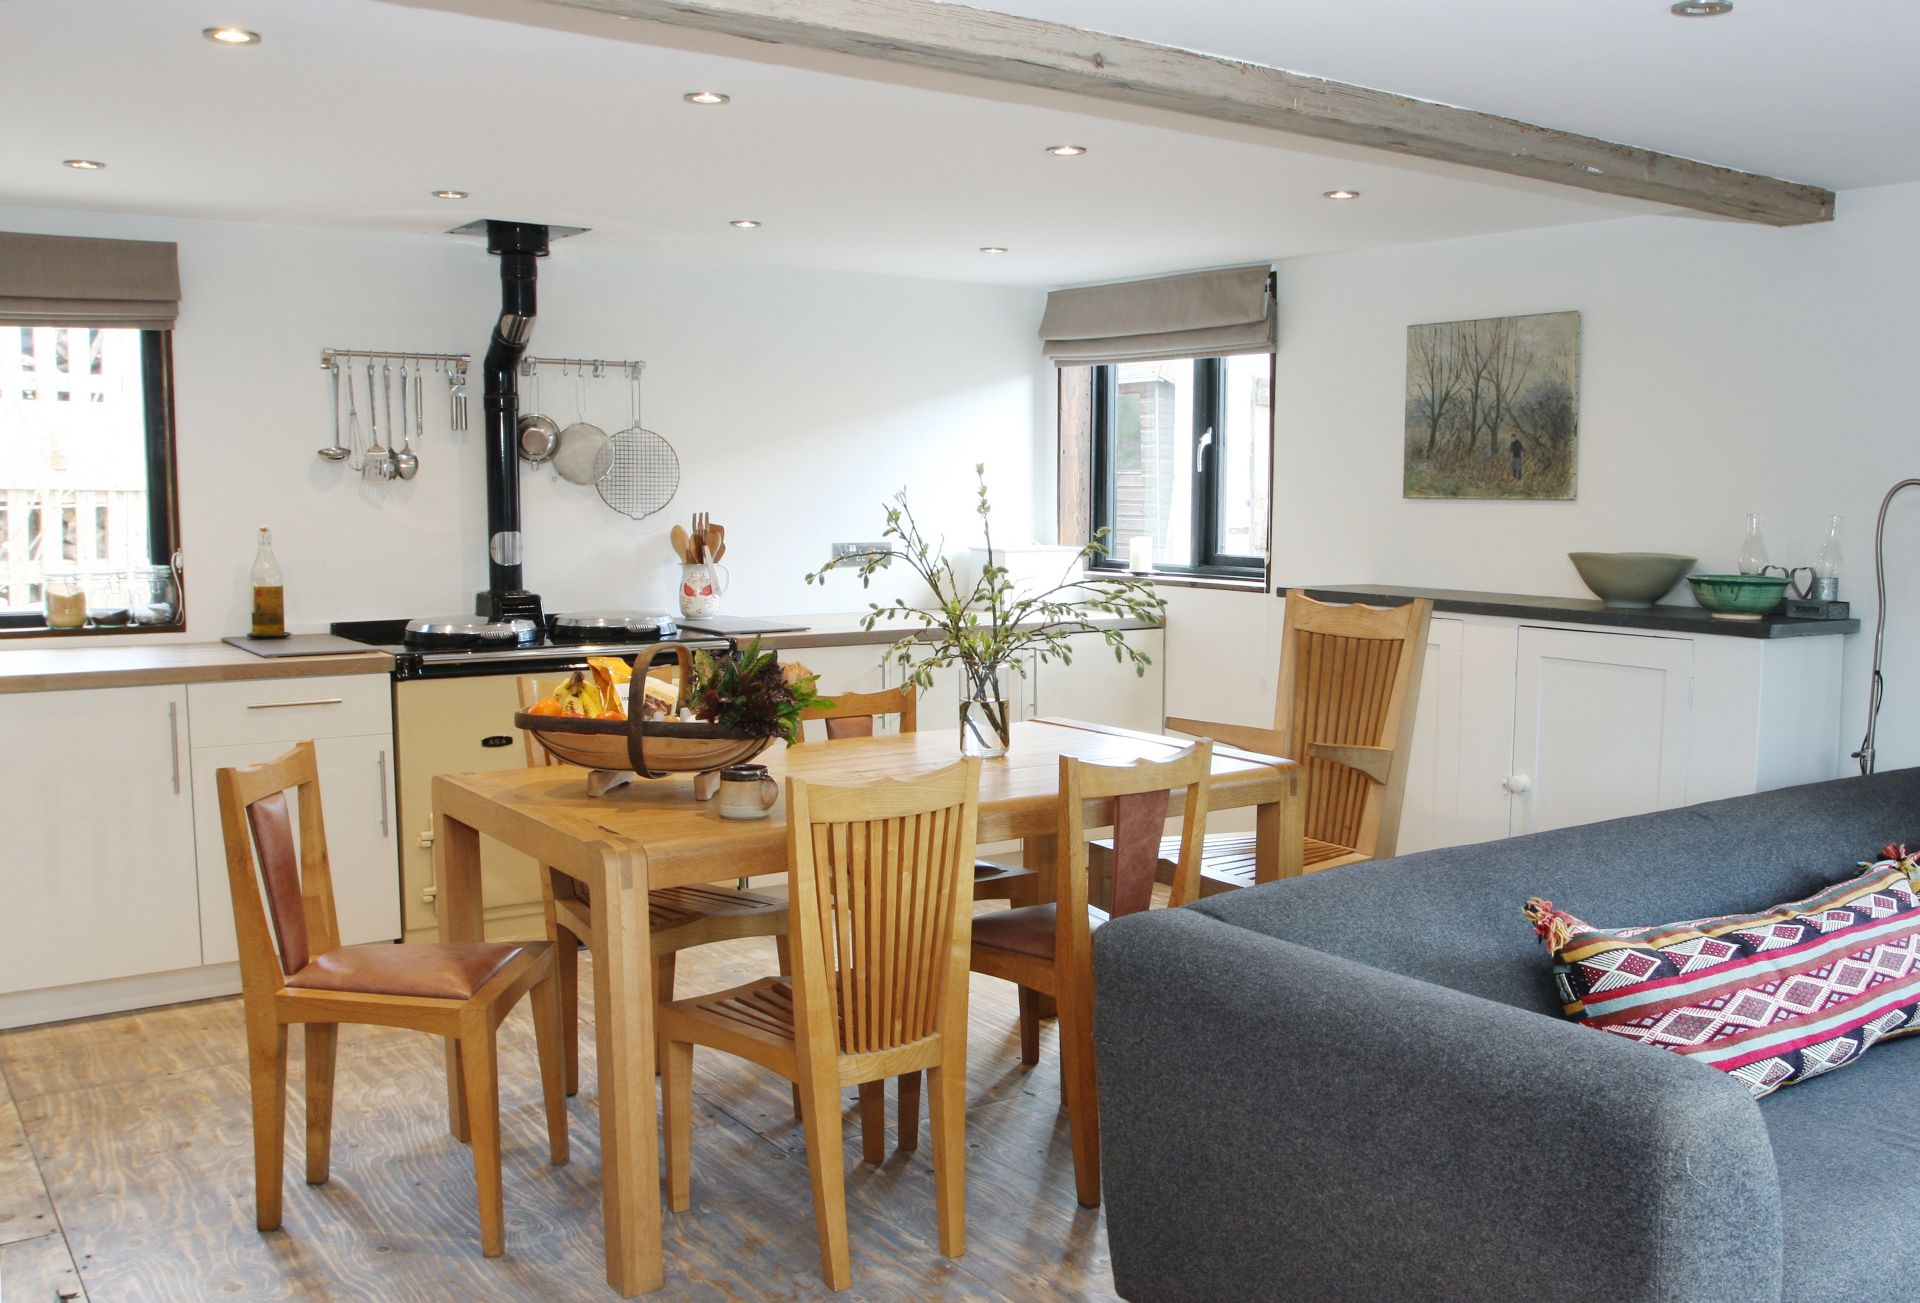 Ground floor: Open plan kitchen, living and dining area with Aga